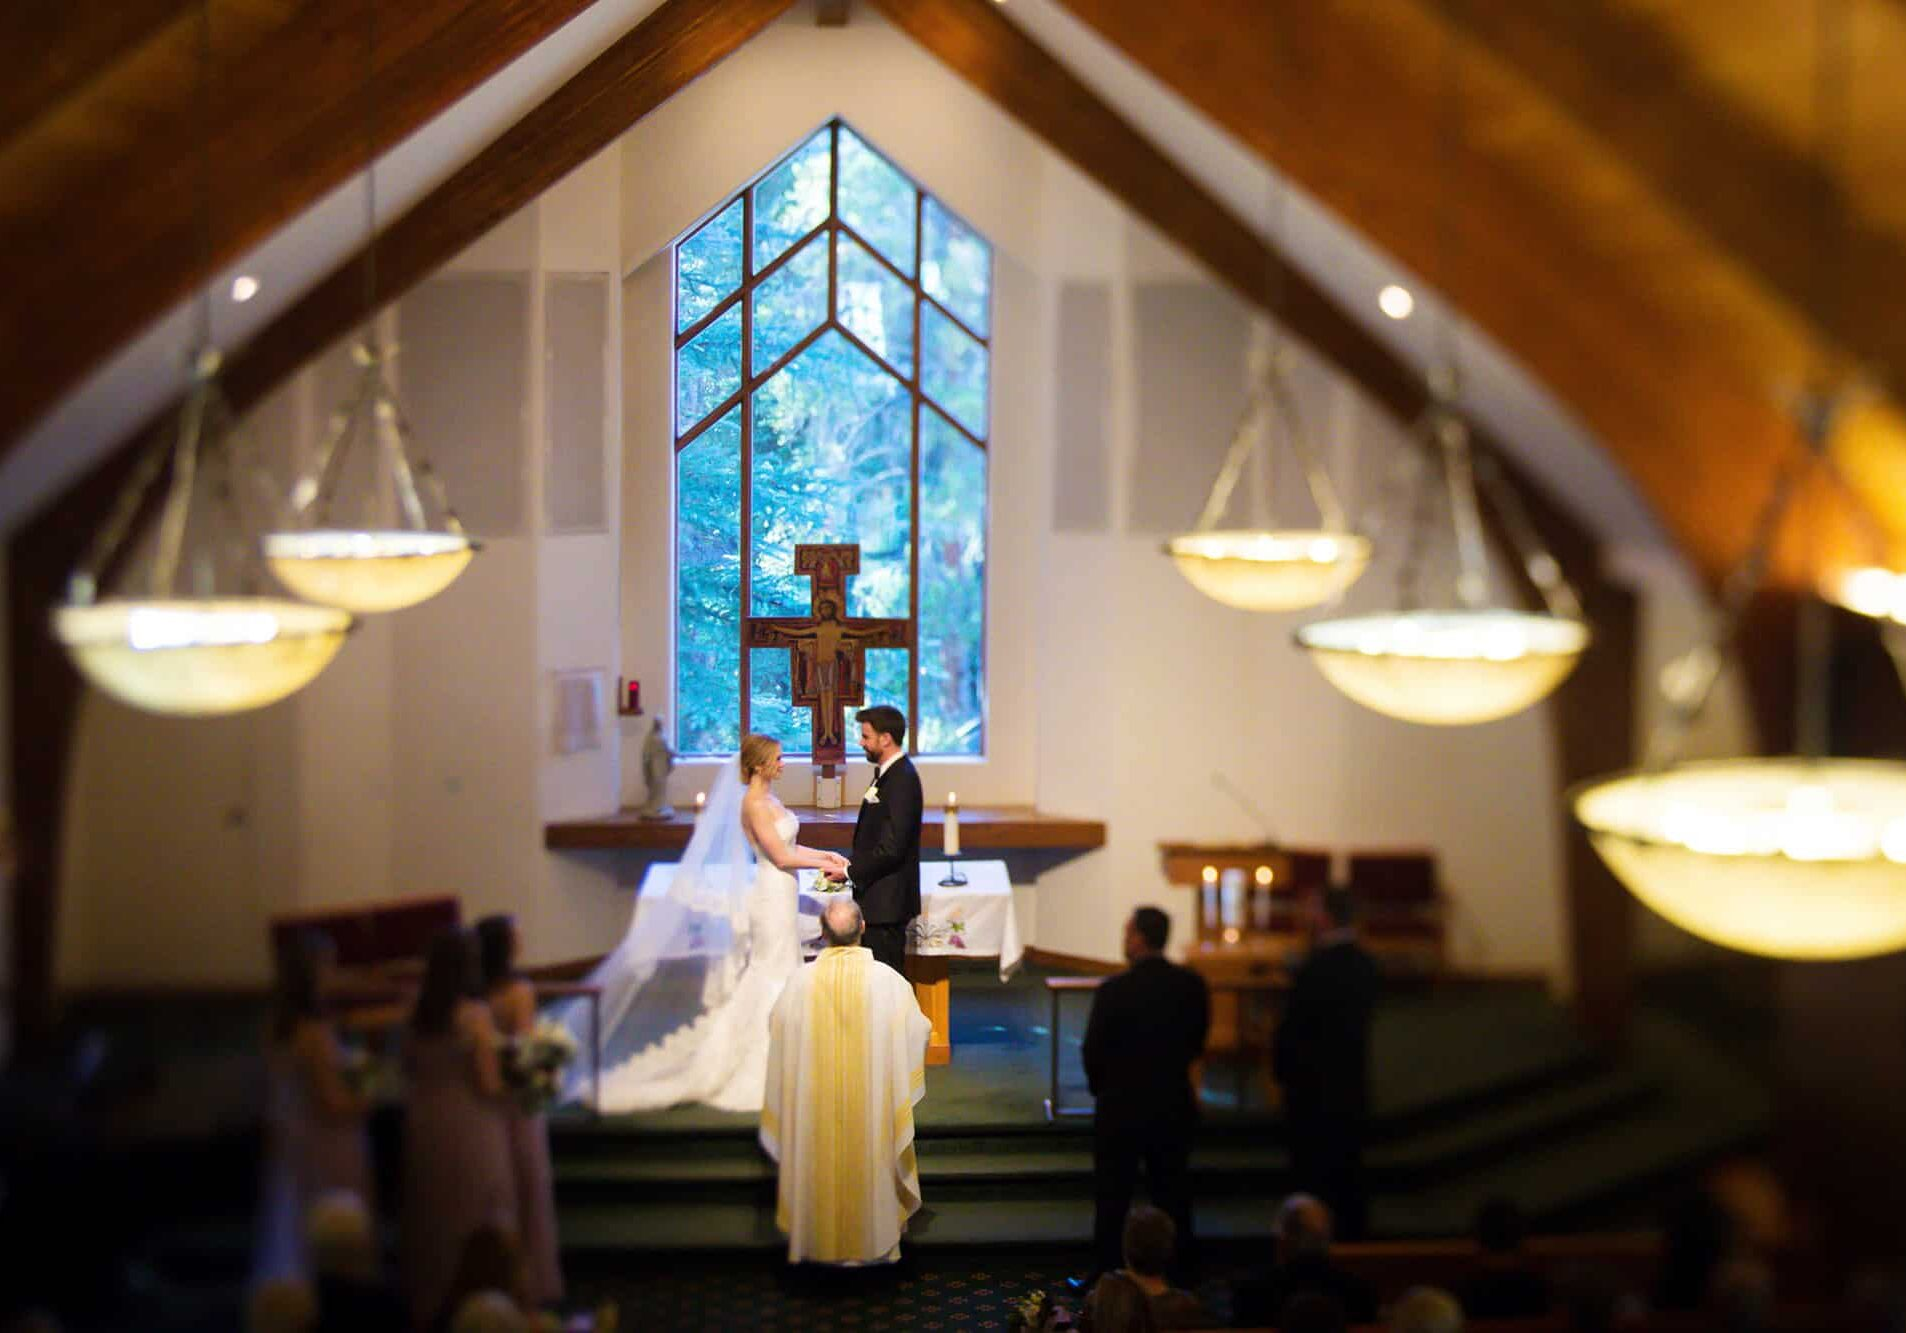 Bride and groom getting married in a chapel